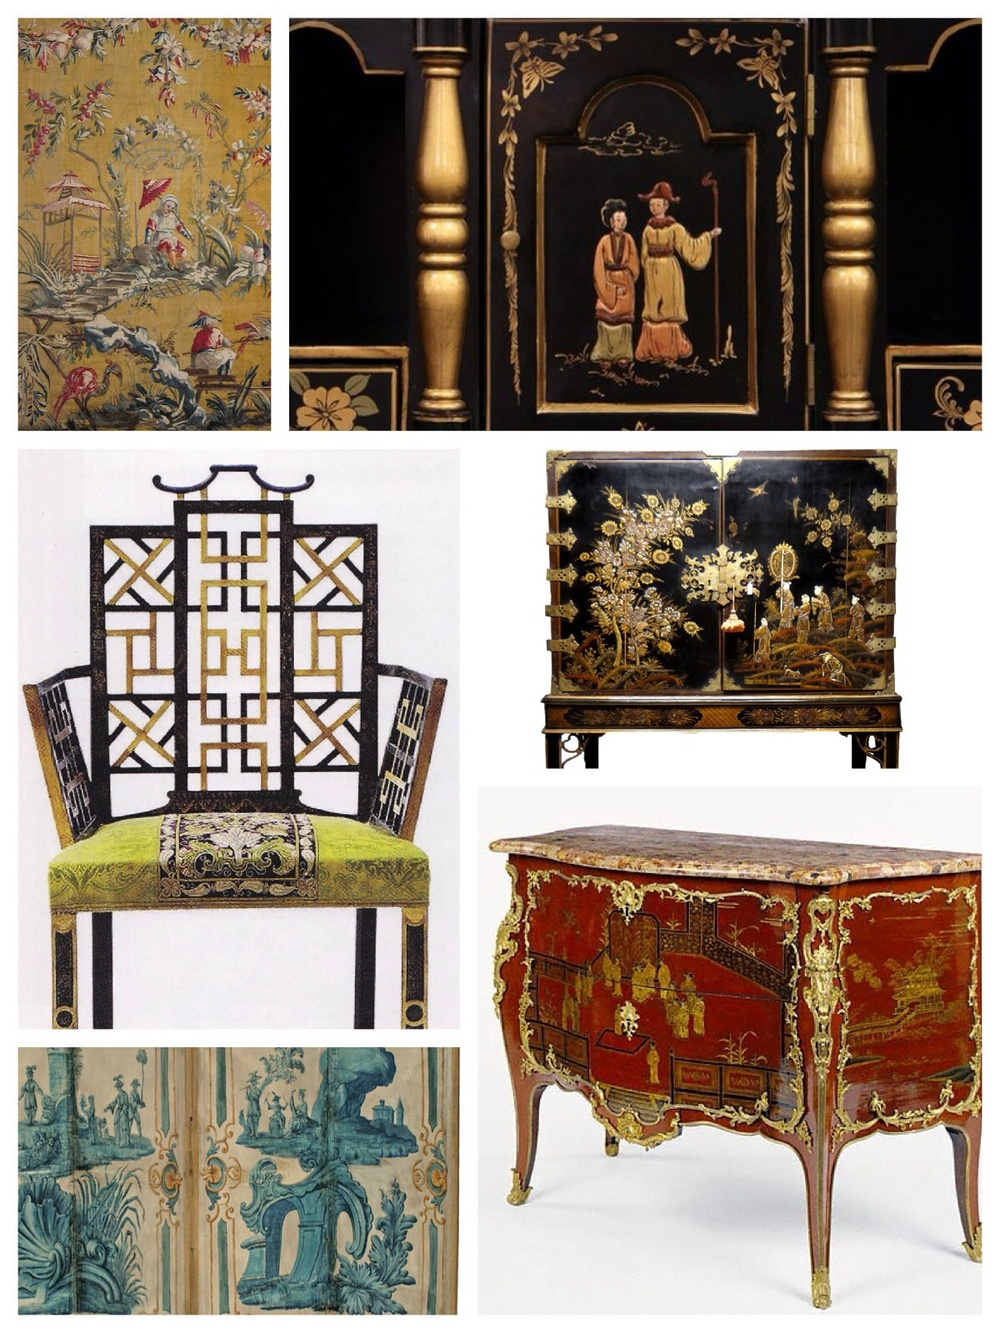 via: The History of Furniture